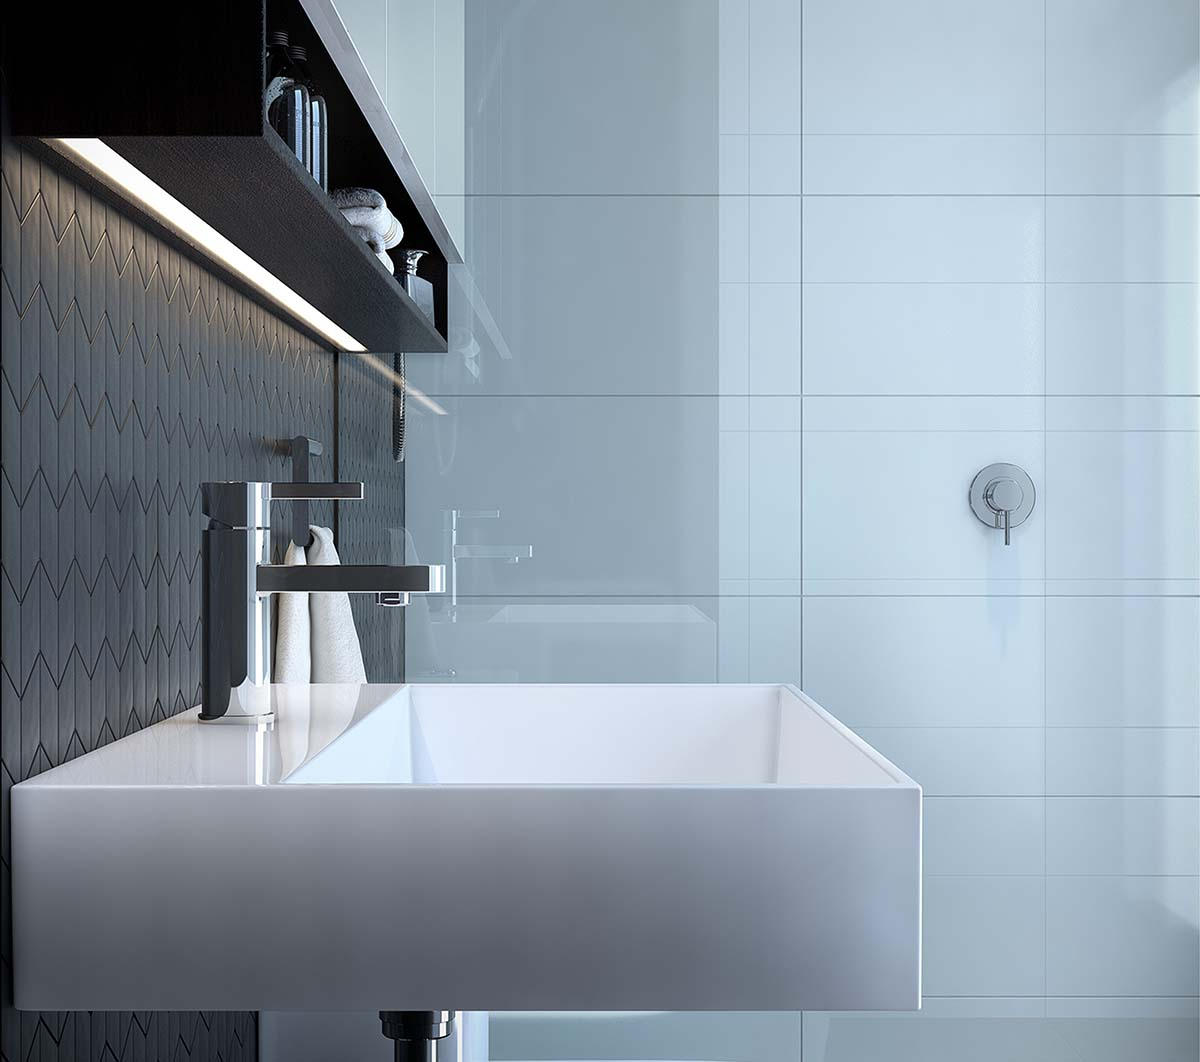 bathroom detail with sink and shower